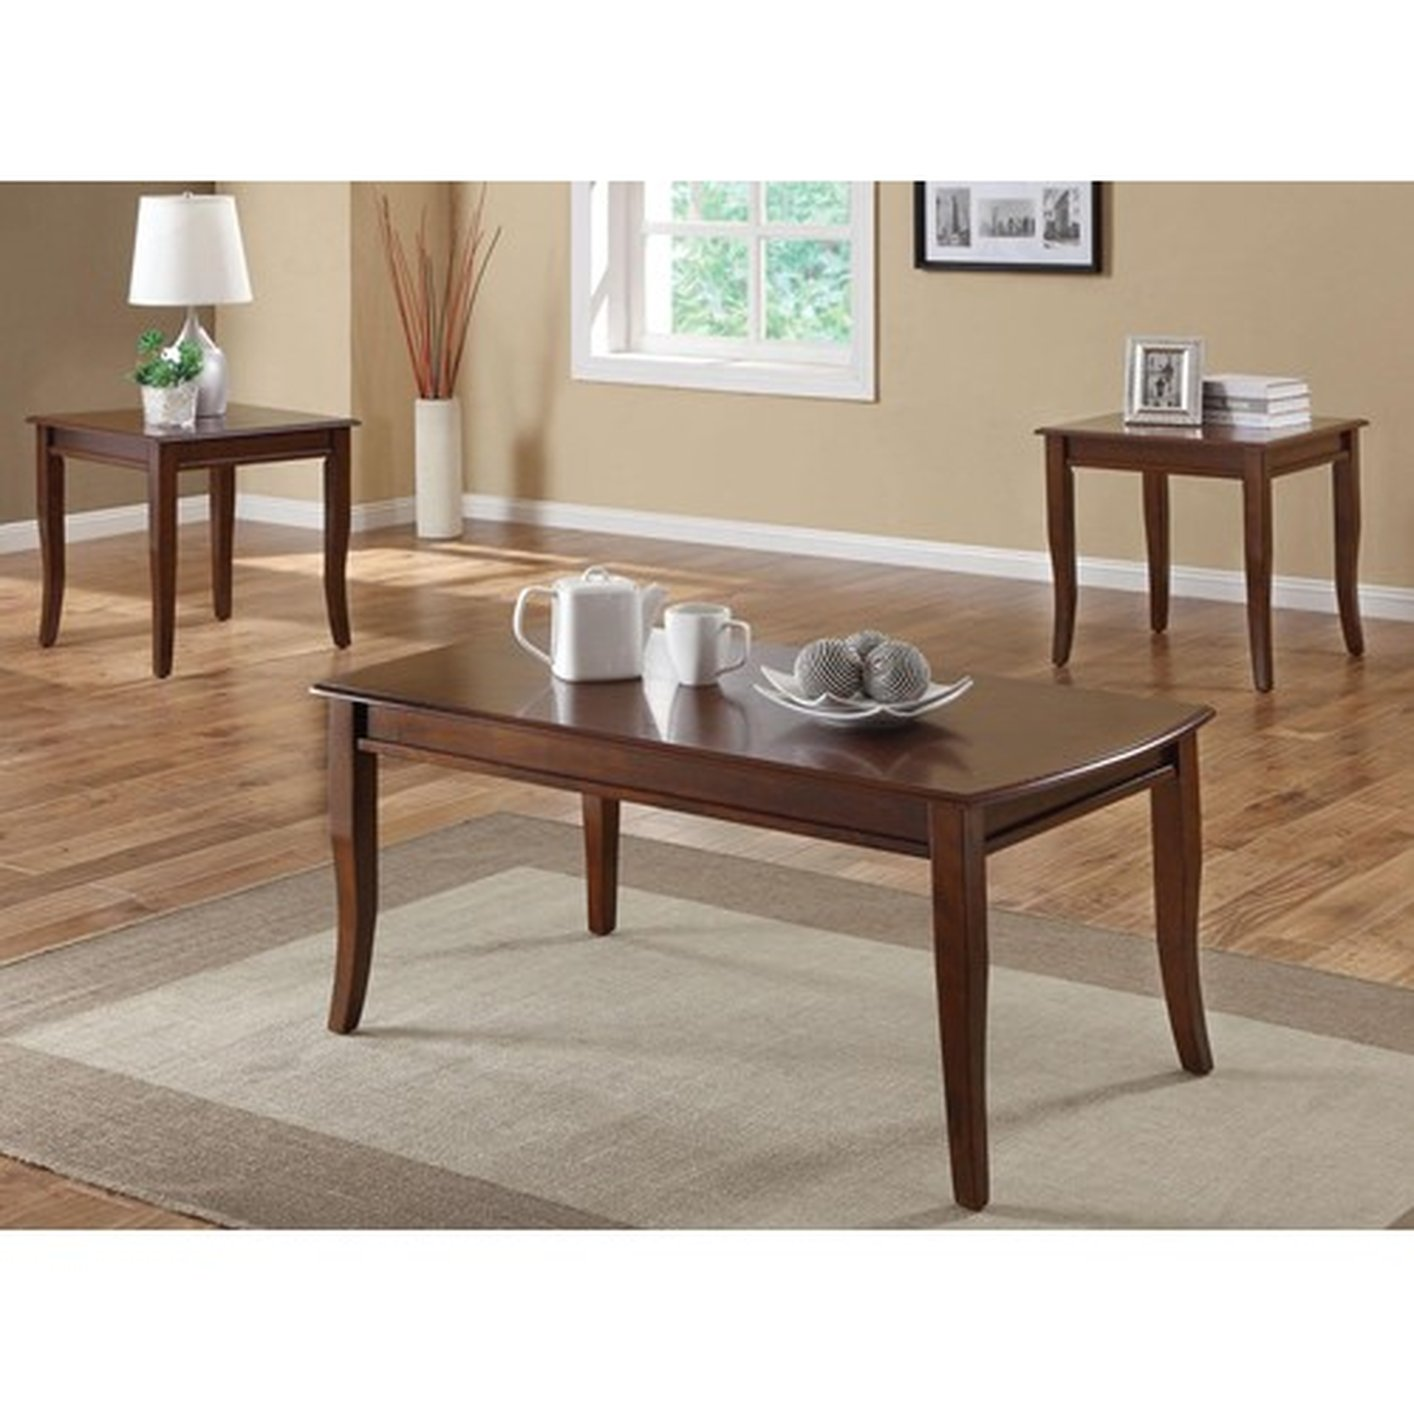 Coaster 701603 Brown Wood Coffee Table Set Steal A Sofa Furniture Outlet Los Angeles Ca